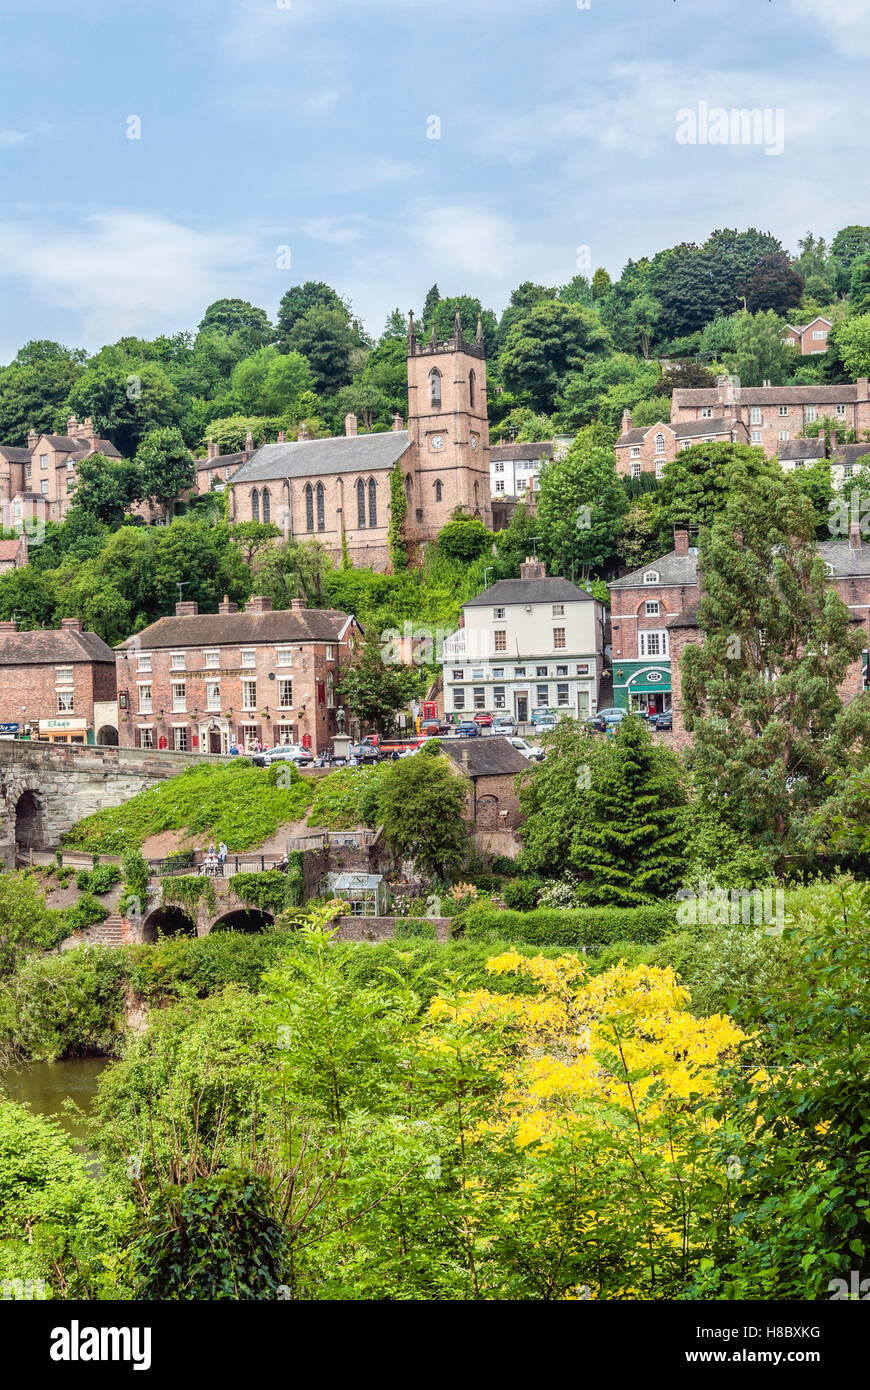 Village Ironbridge at the famous bridge that crosses the River Severn at the Ironbridge Gorge in Shropshire, England - Stock Image